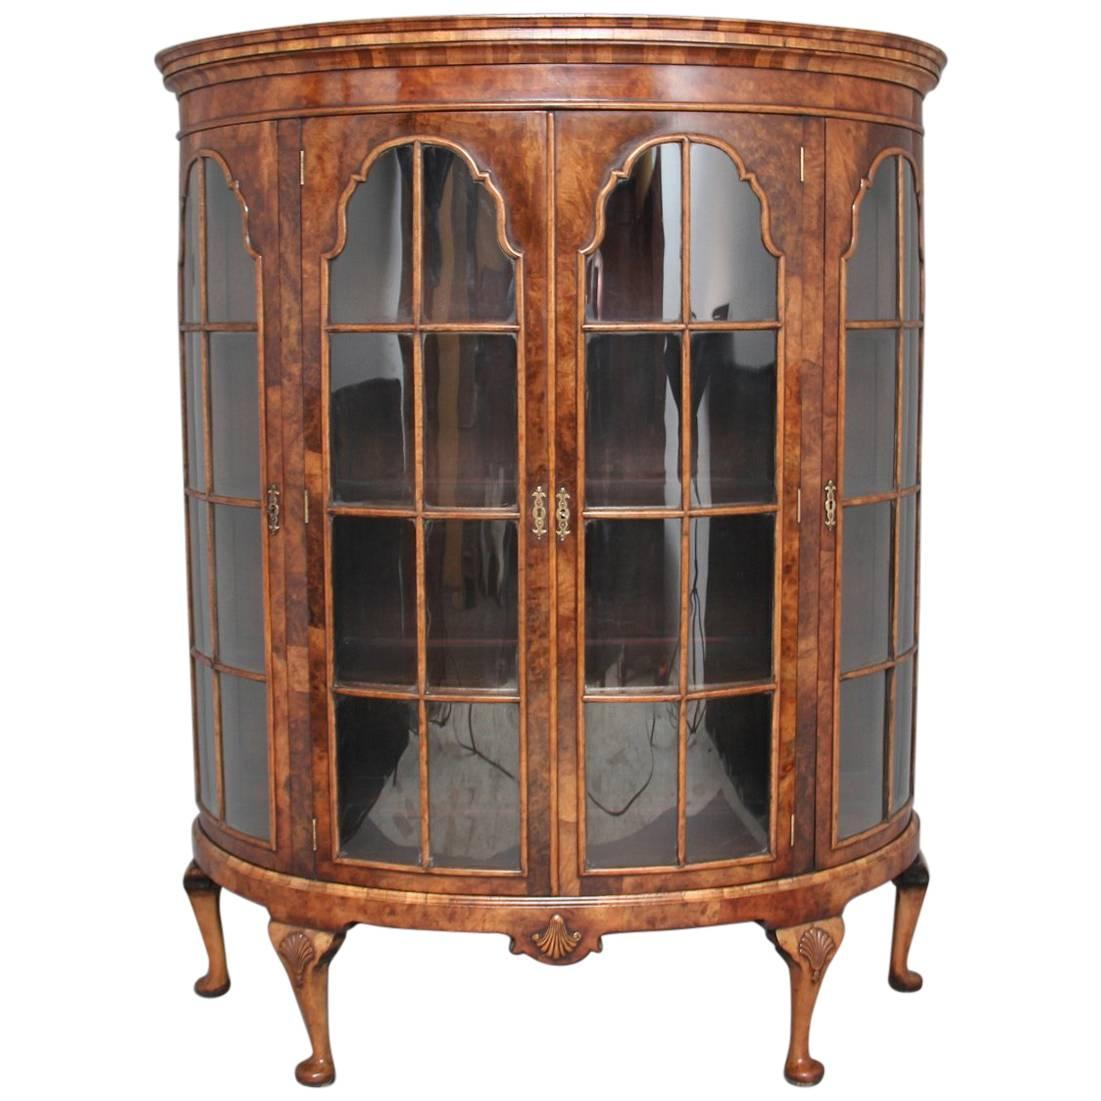 Queen Anne Cabinets - 14 For Sale at 1stdibs